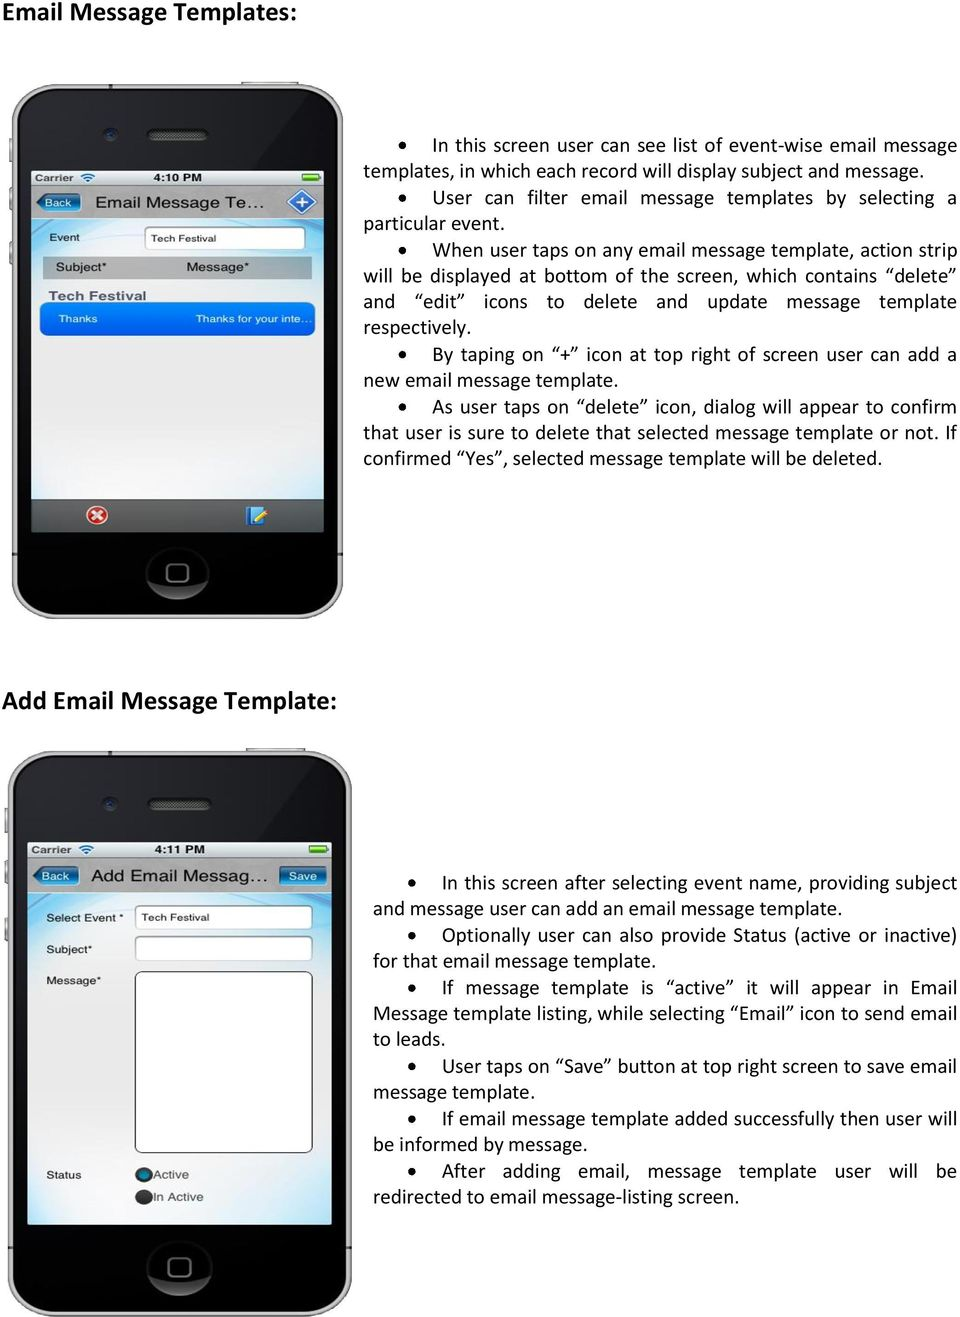 When user taps on any email message template, action strip will be displayed at bottom of the screen, which contains delete and edit icons to delete and update message template respectively.